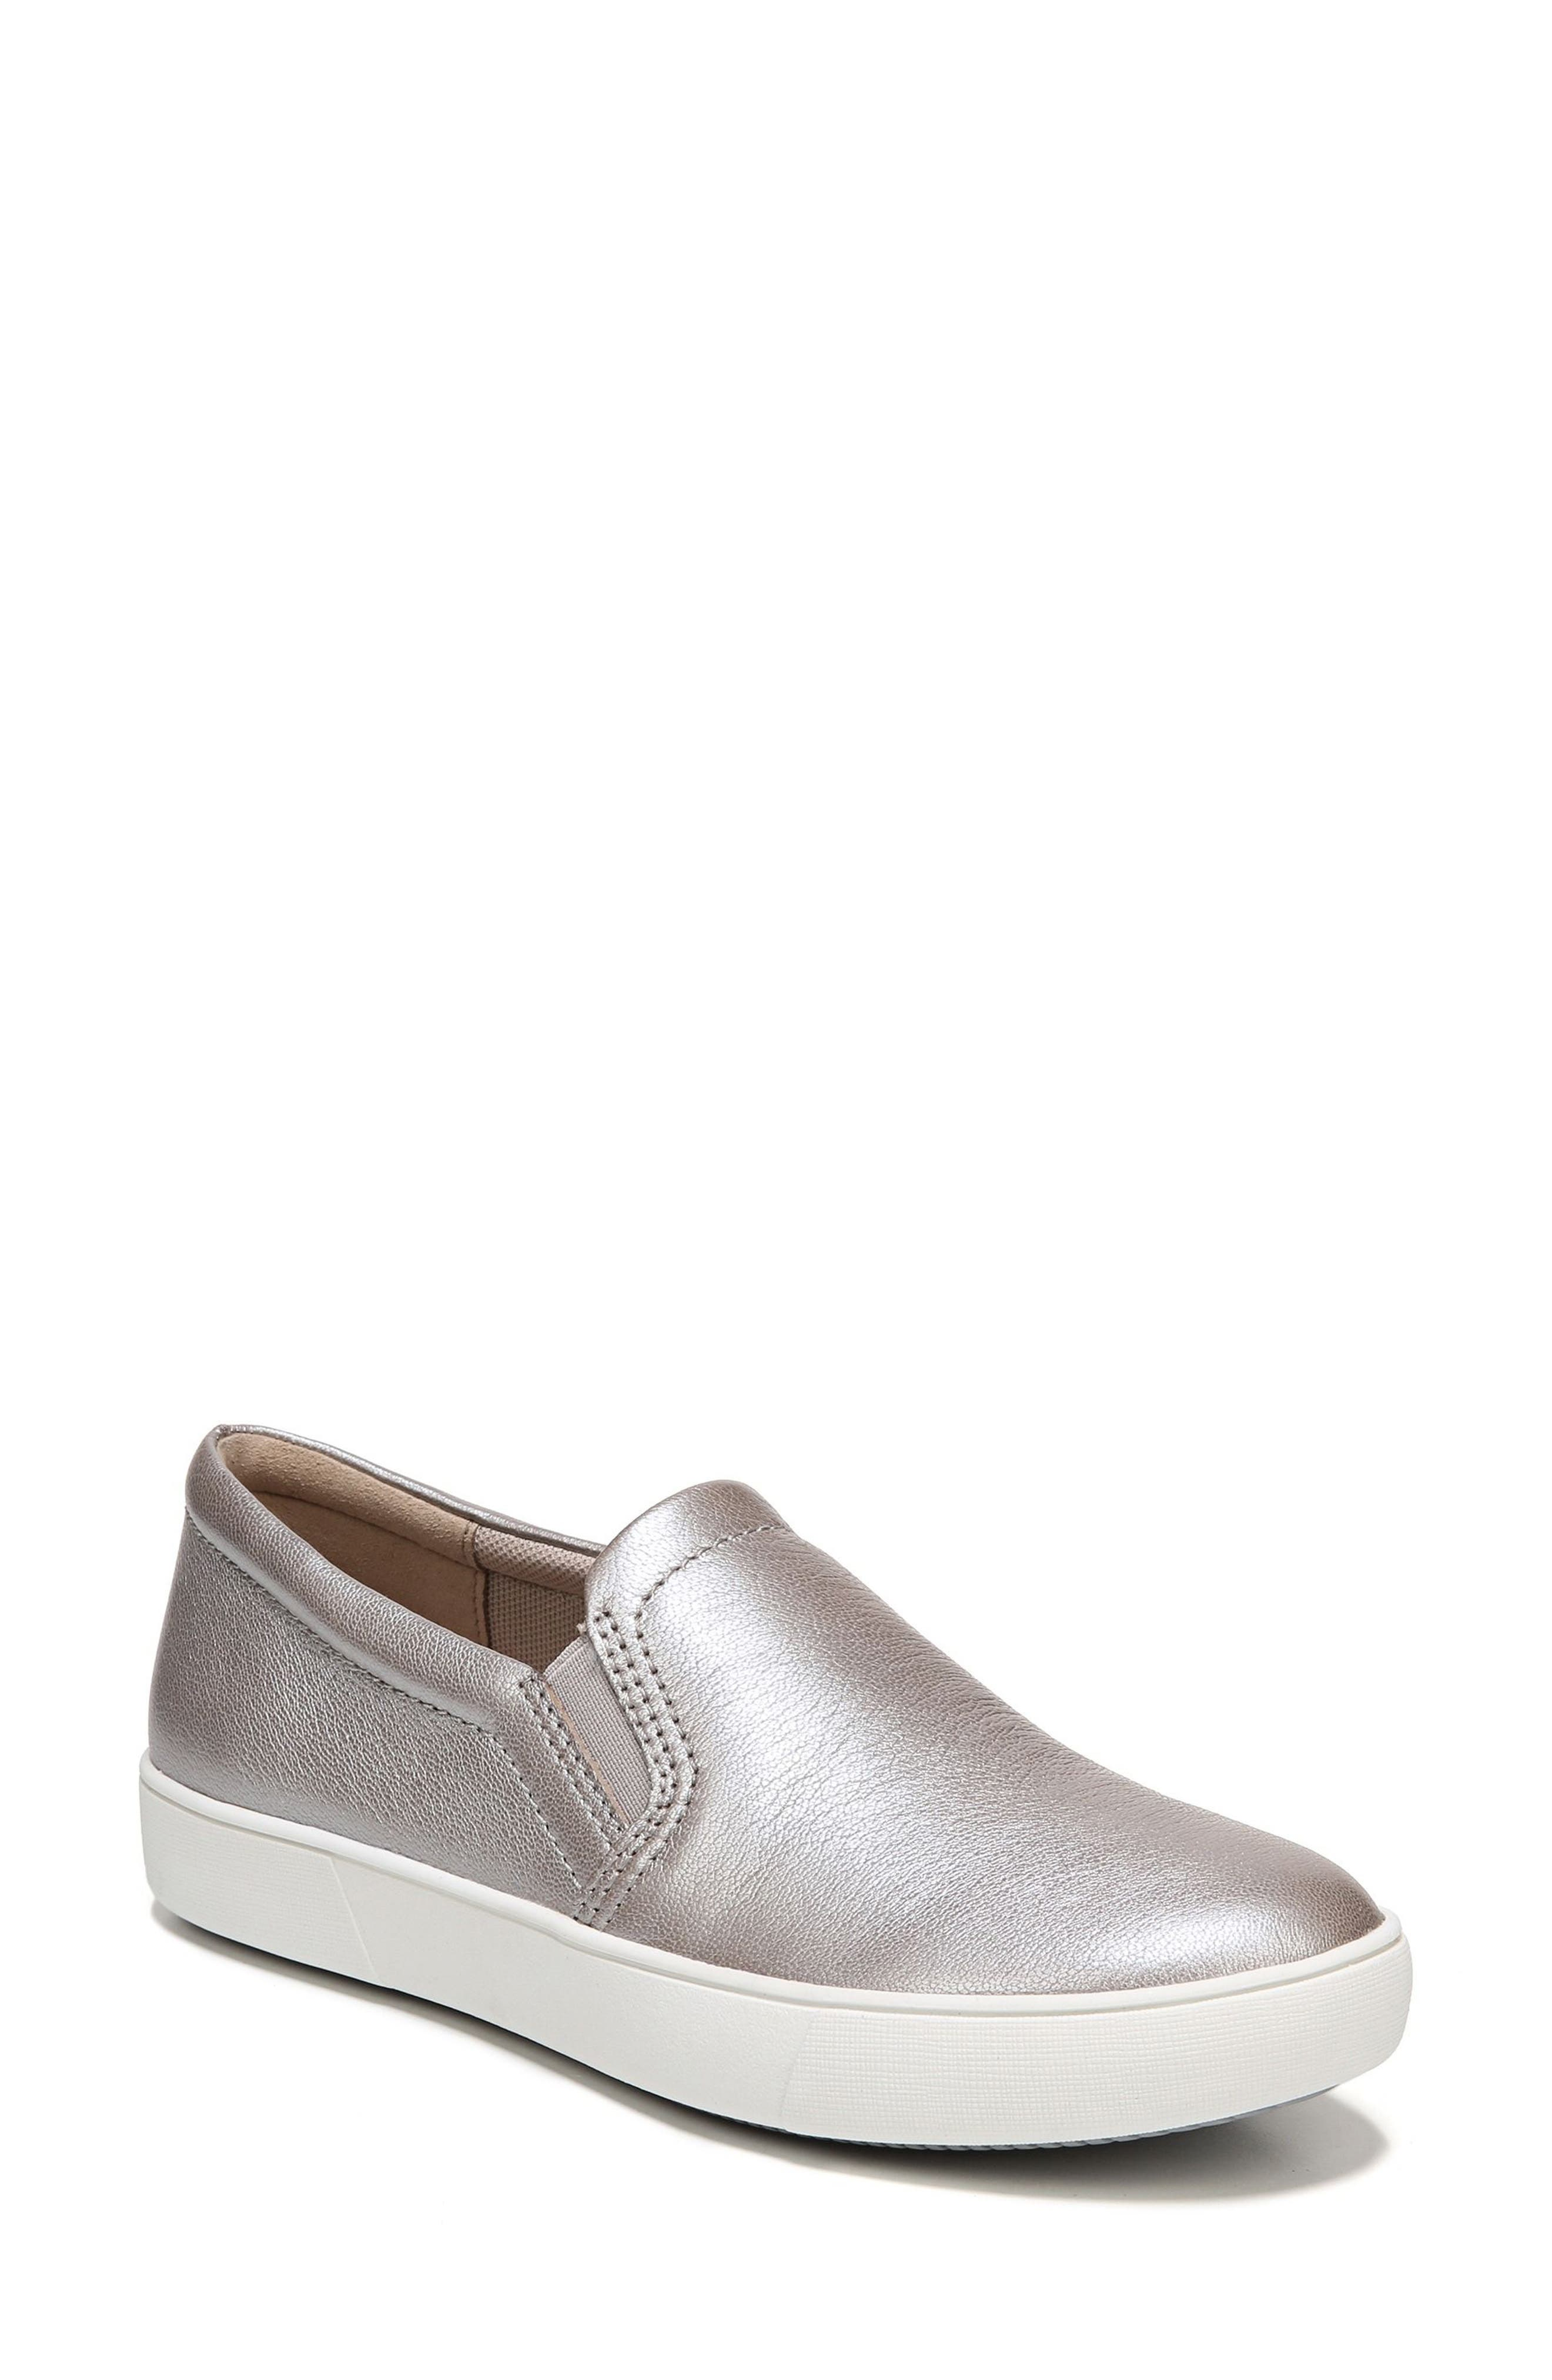 Marianne Slip-On Sneaker,                             Main thumbnail 1, color,                             SILVER LEATHER